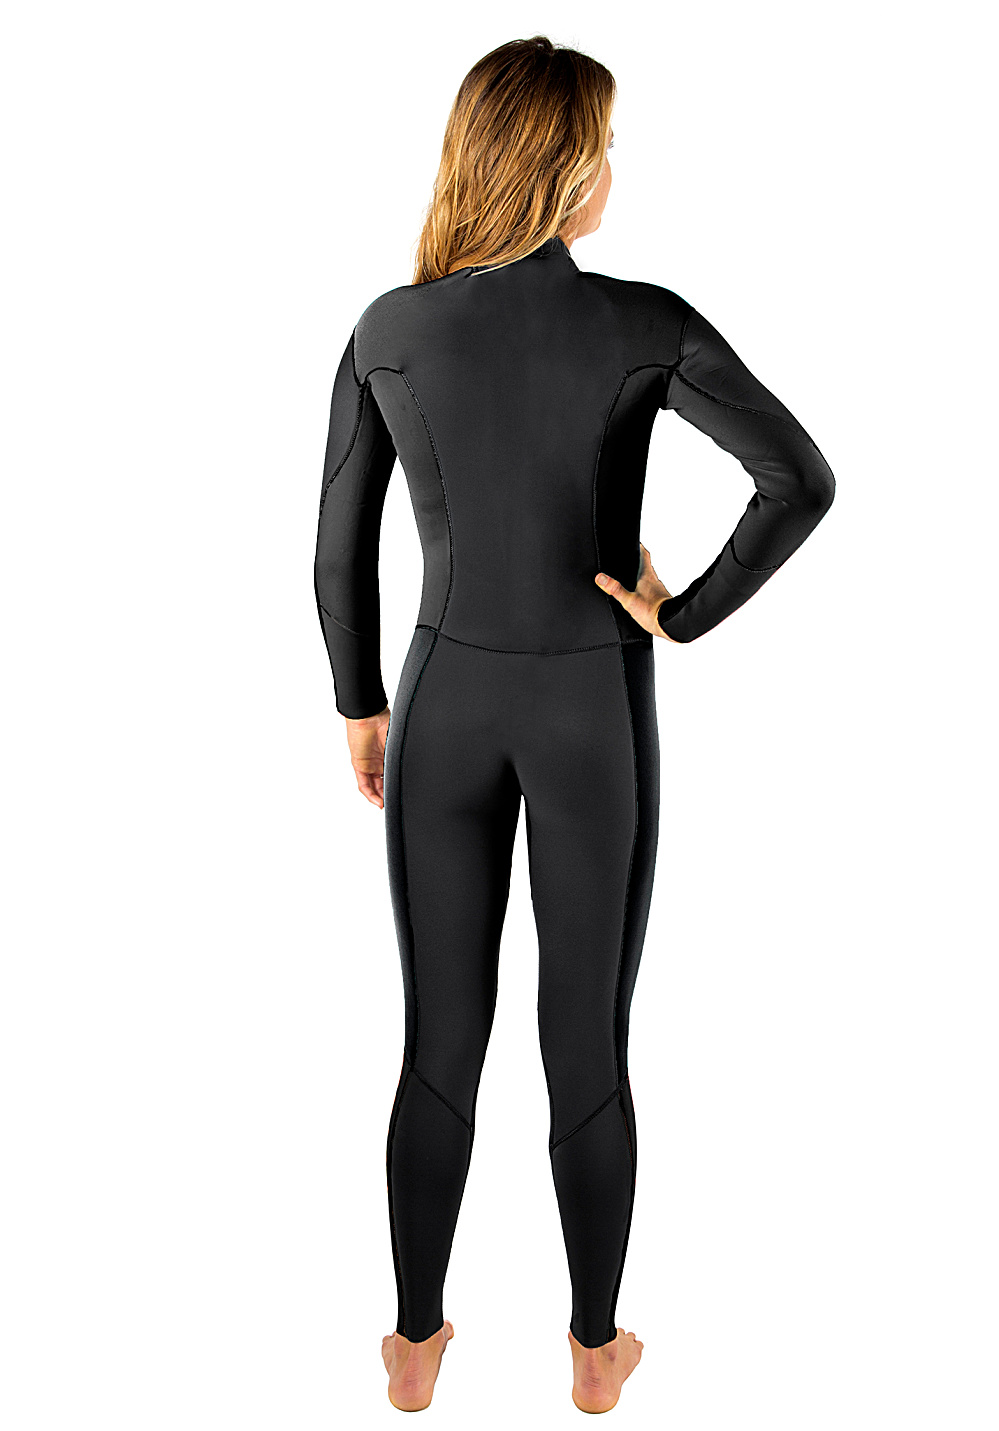 8e29dccb98 Rip Curl G-Bomb 2/2mm Front Zip - Wetsuit for Women - Black